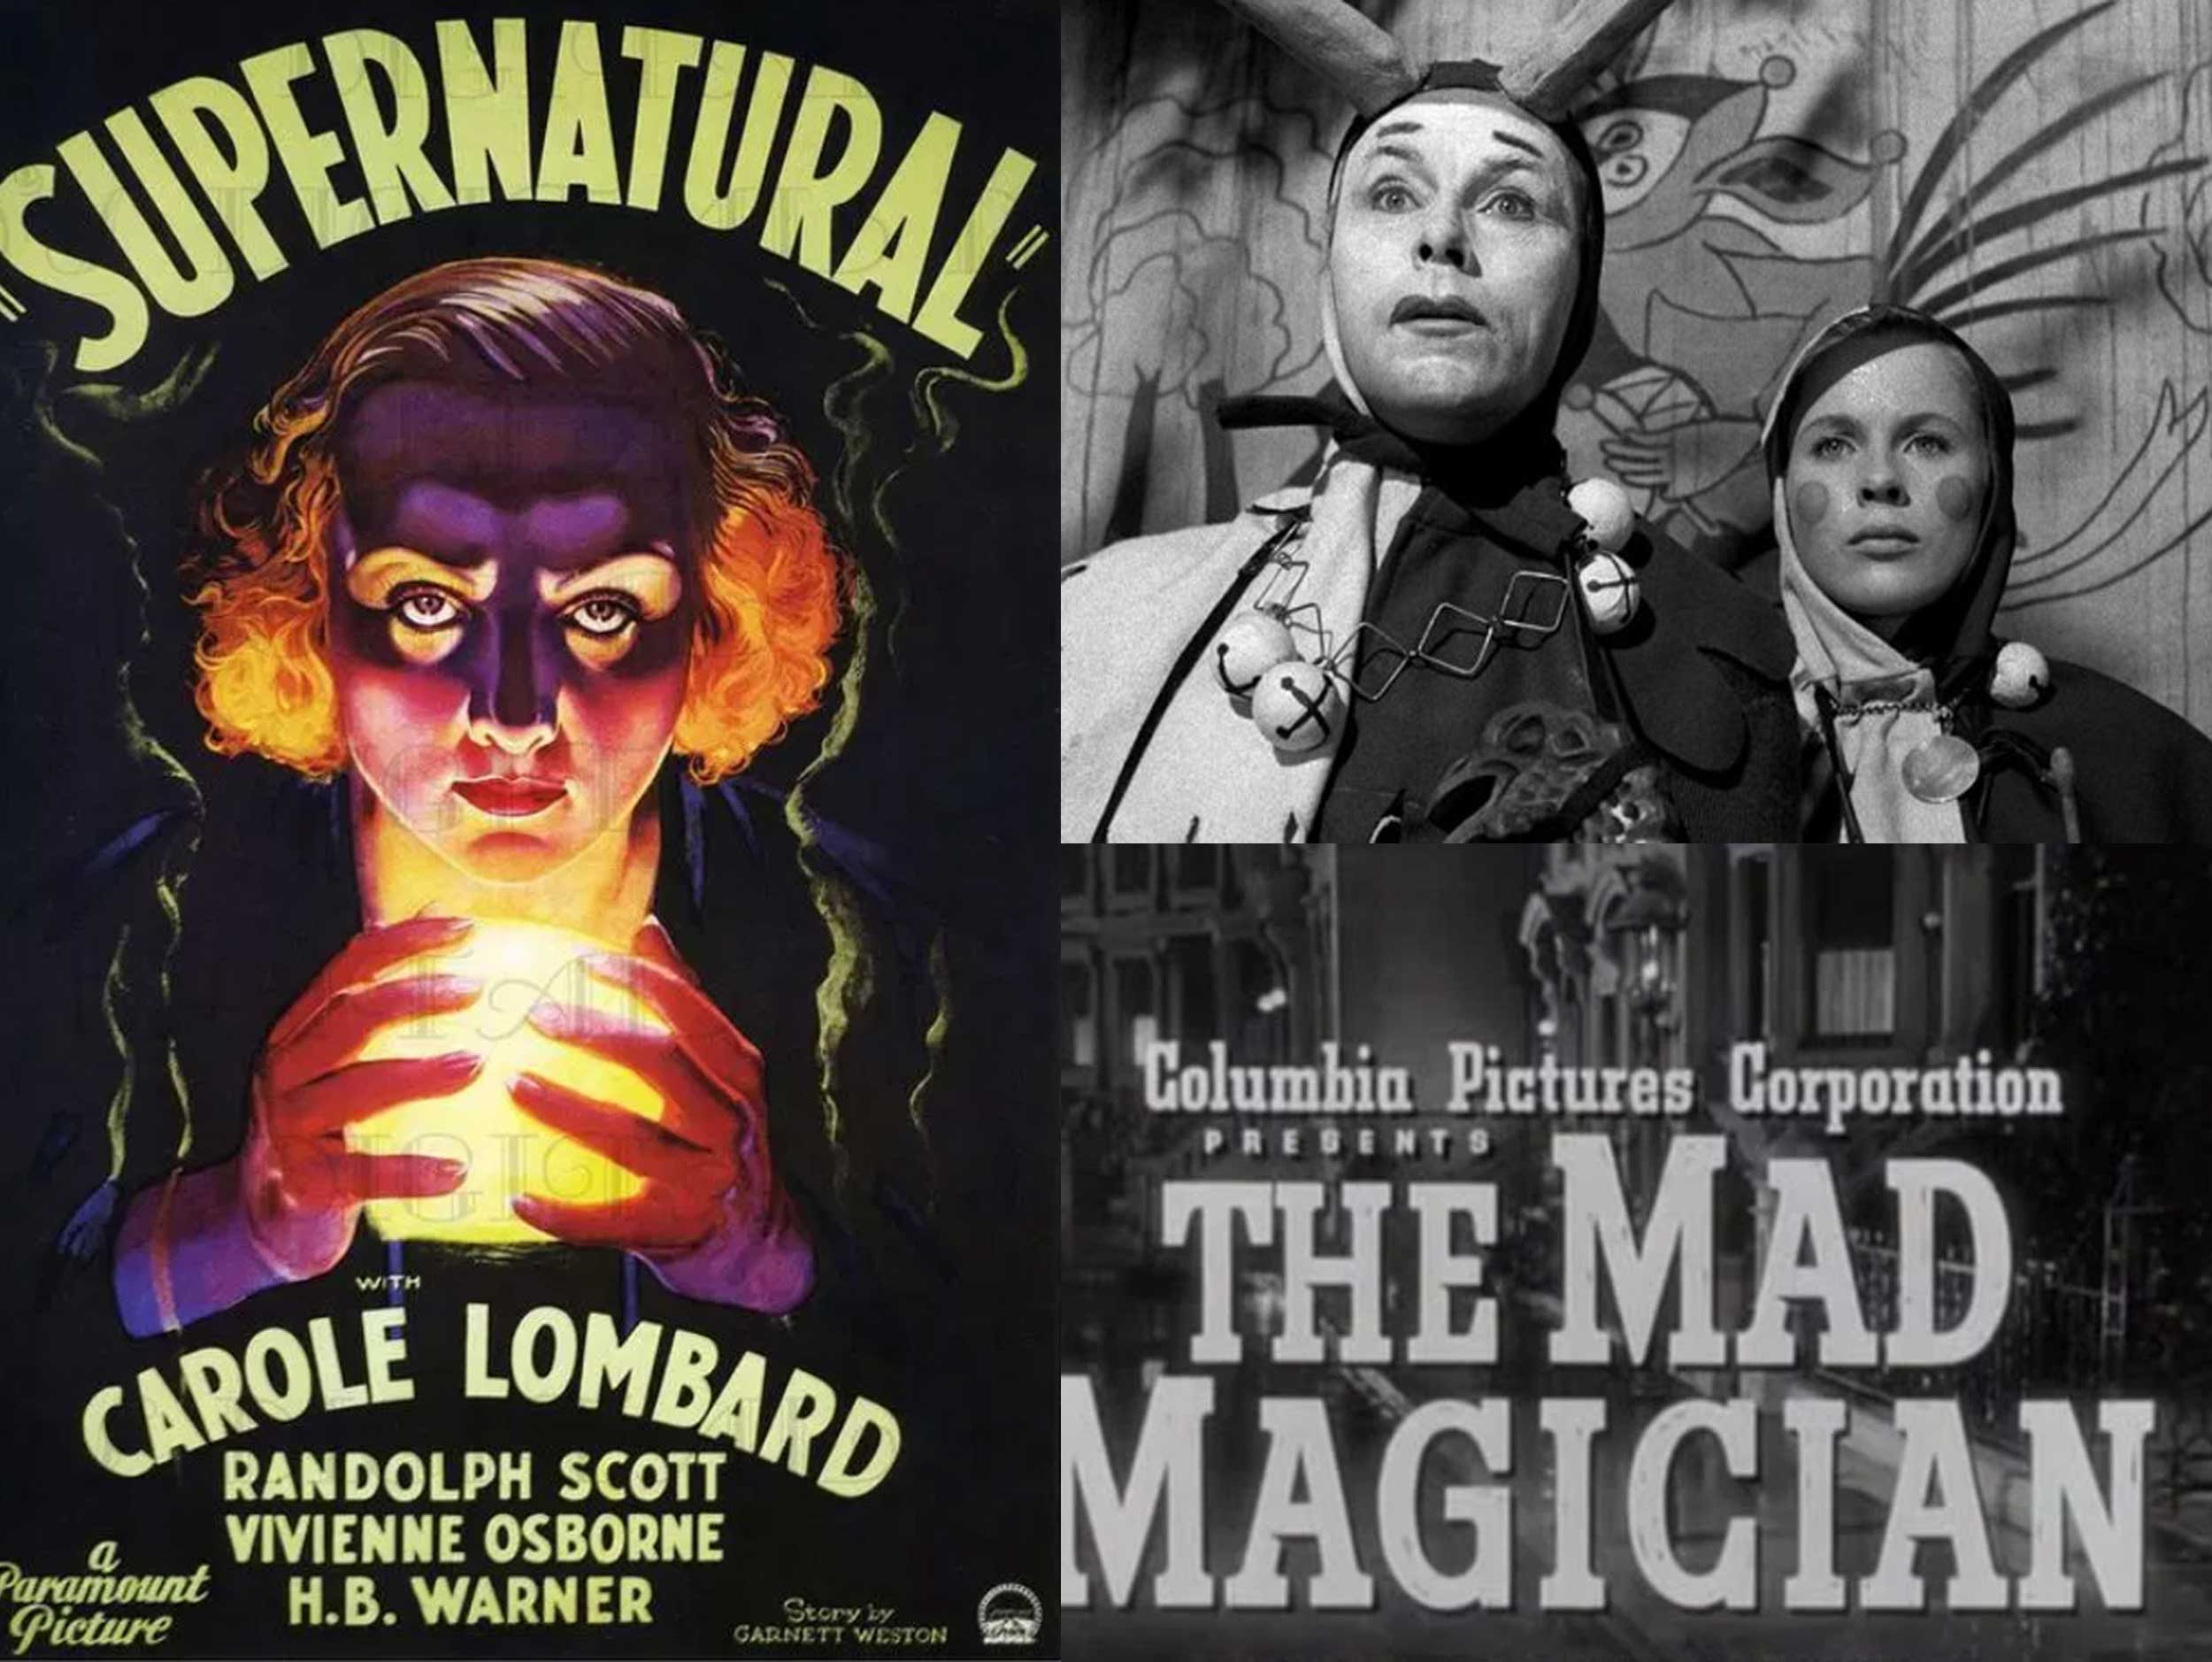 Three images from magician themed films